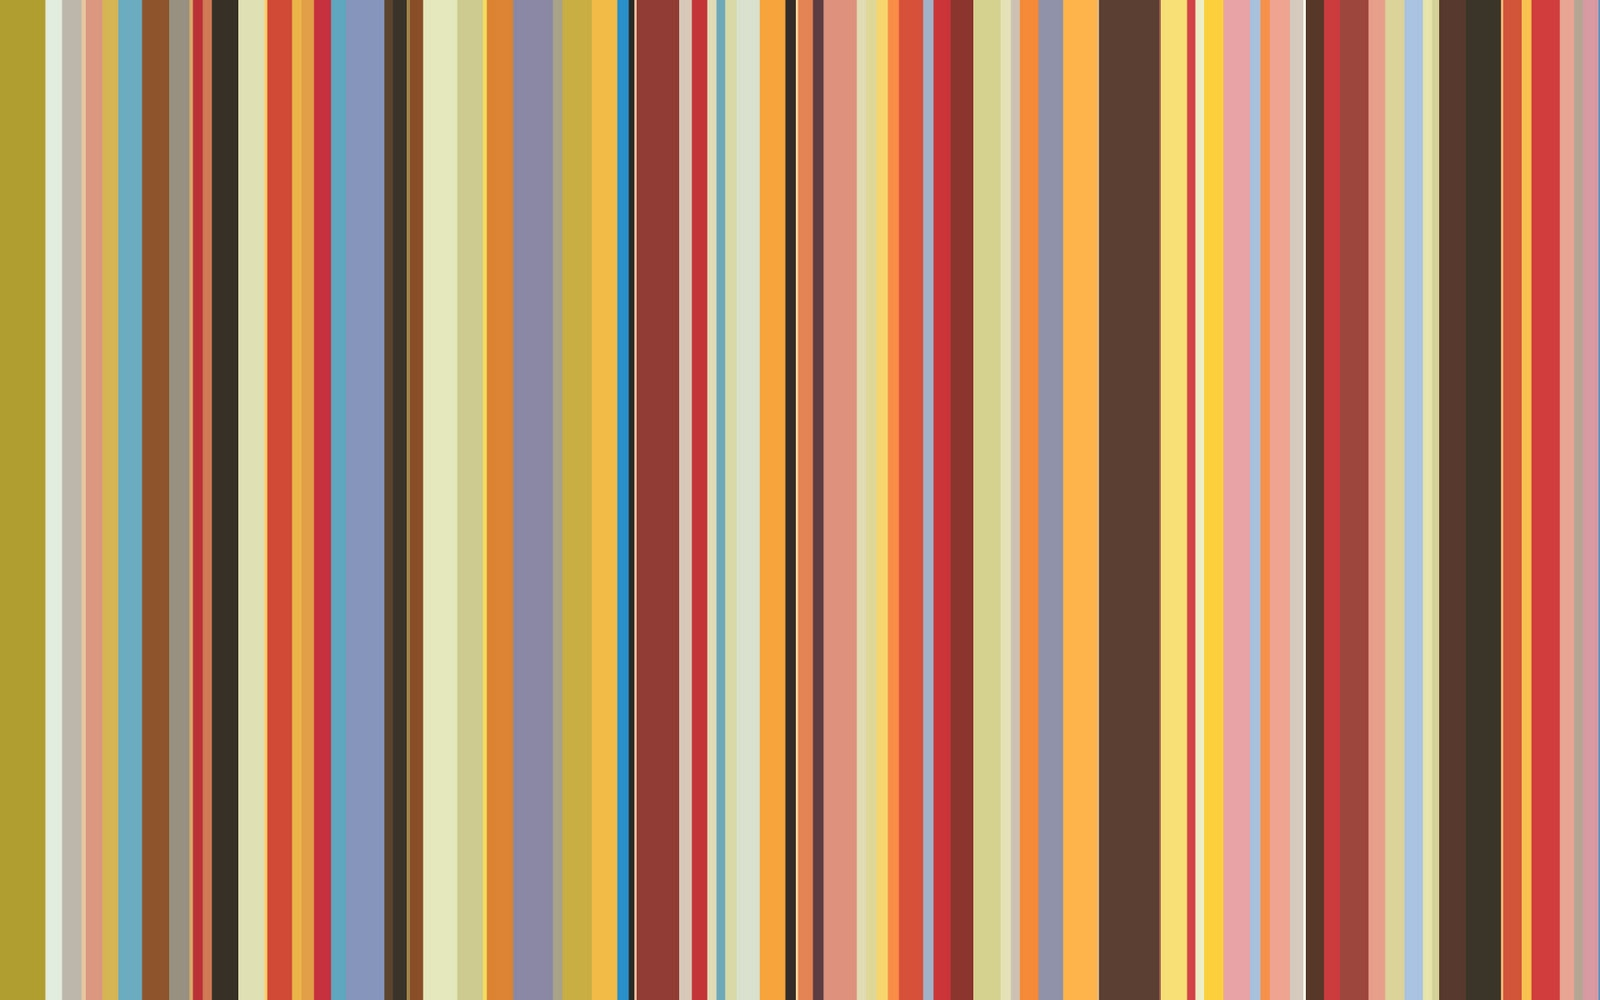 Black And White Striped Wallpaper A Library Of Design Orange You Glad Orange Is In